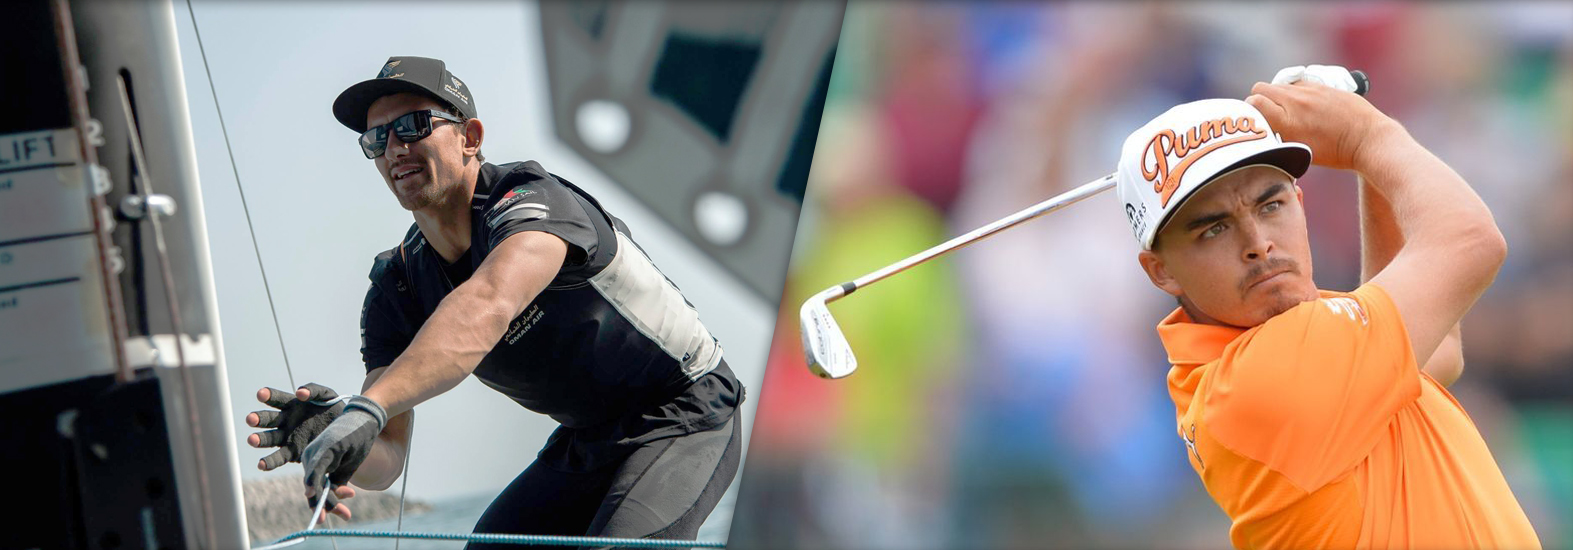 Sailing versus Golf